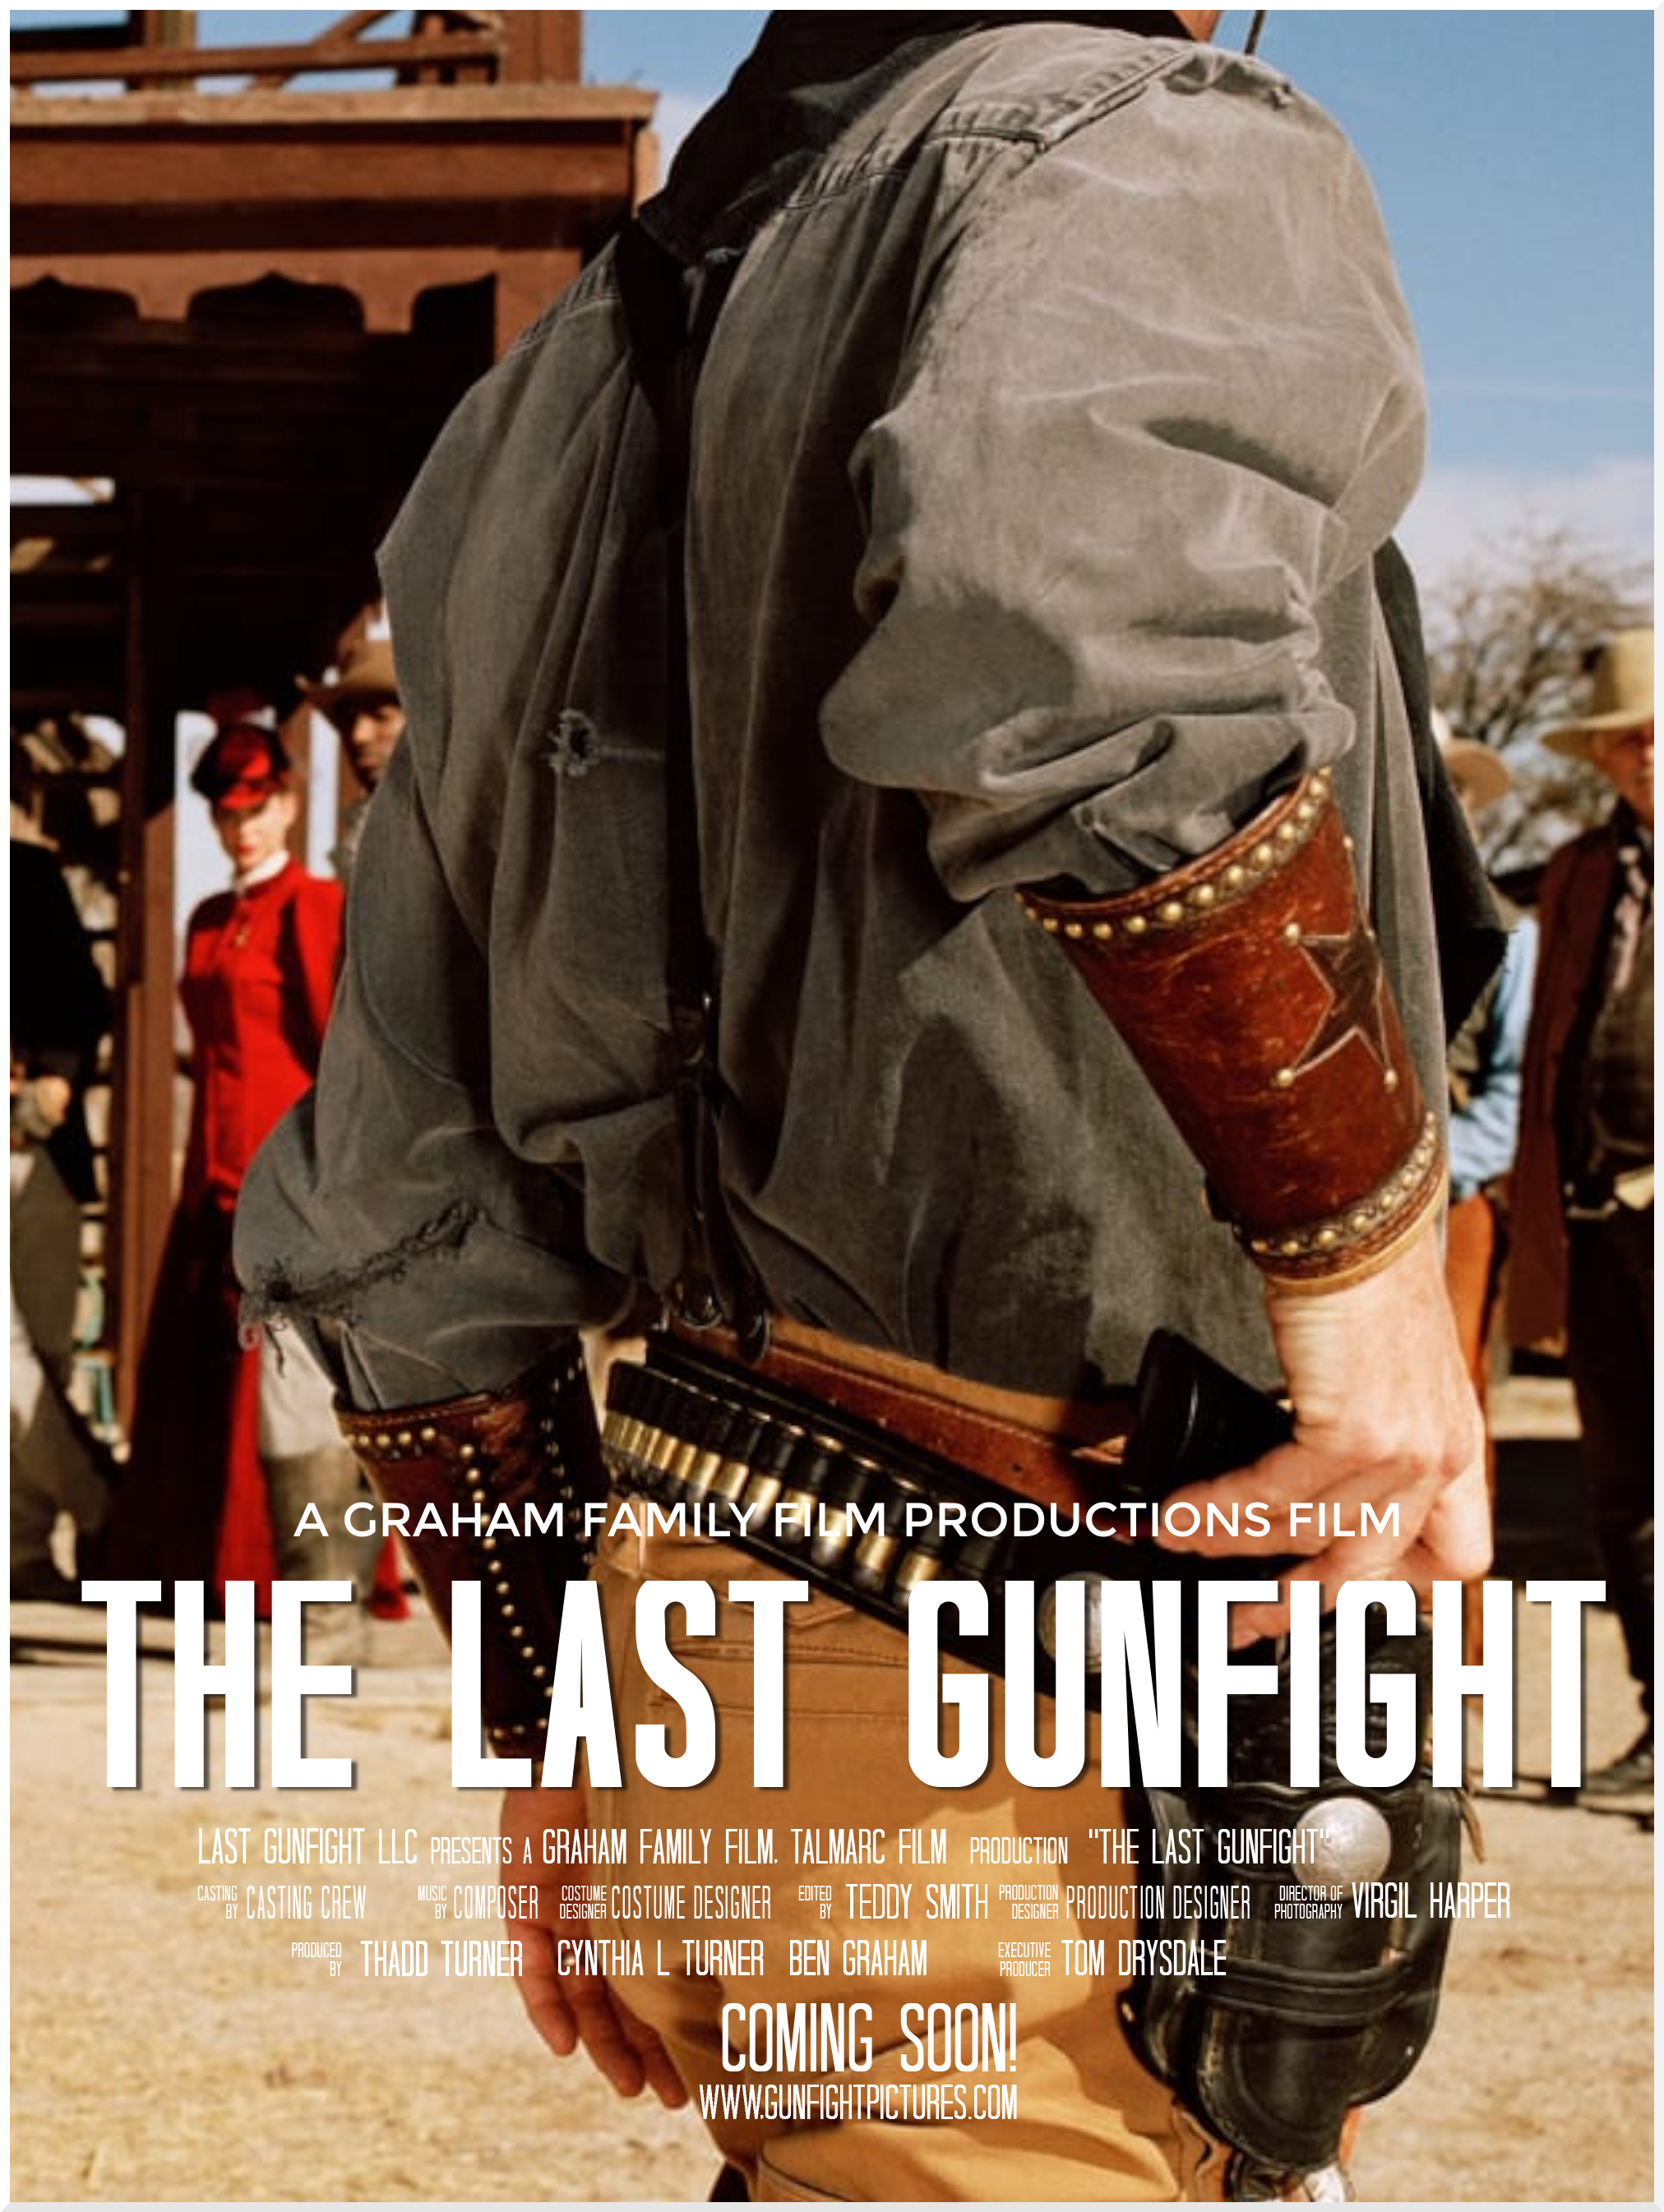 last gunfight.Movie Poster Template2